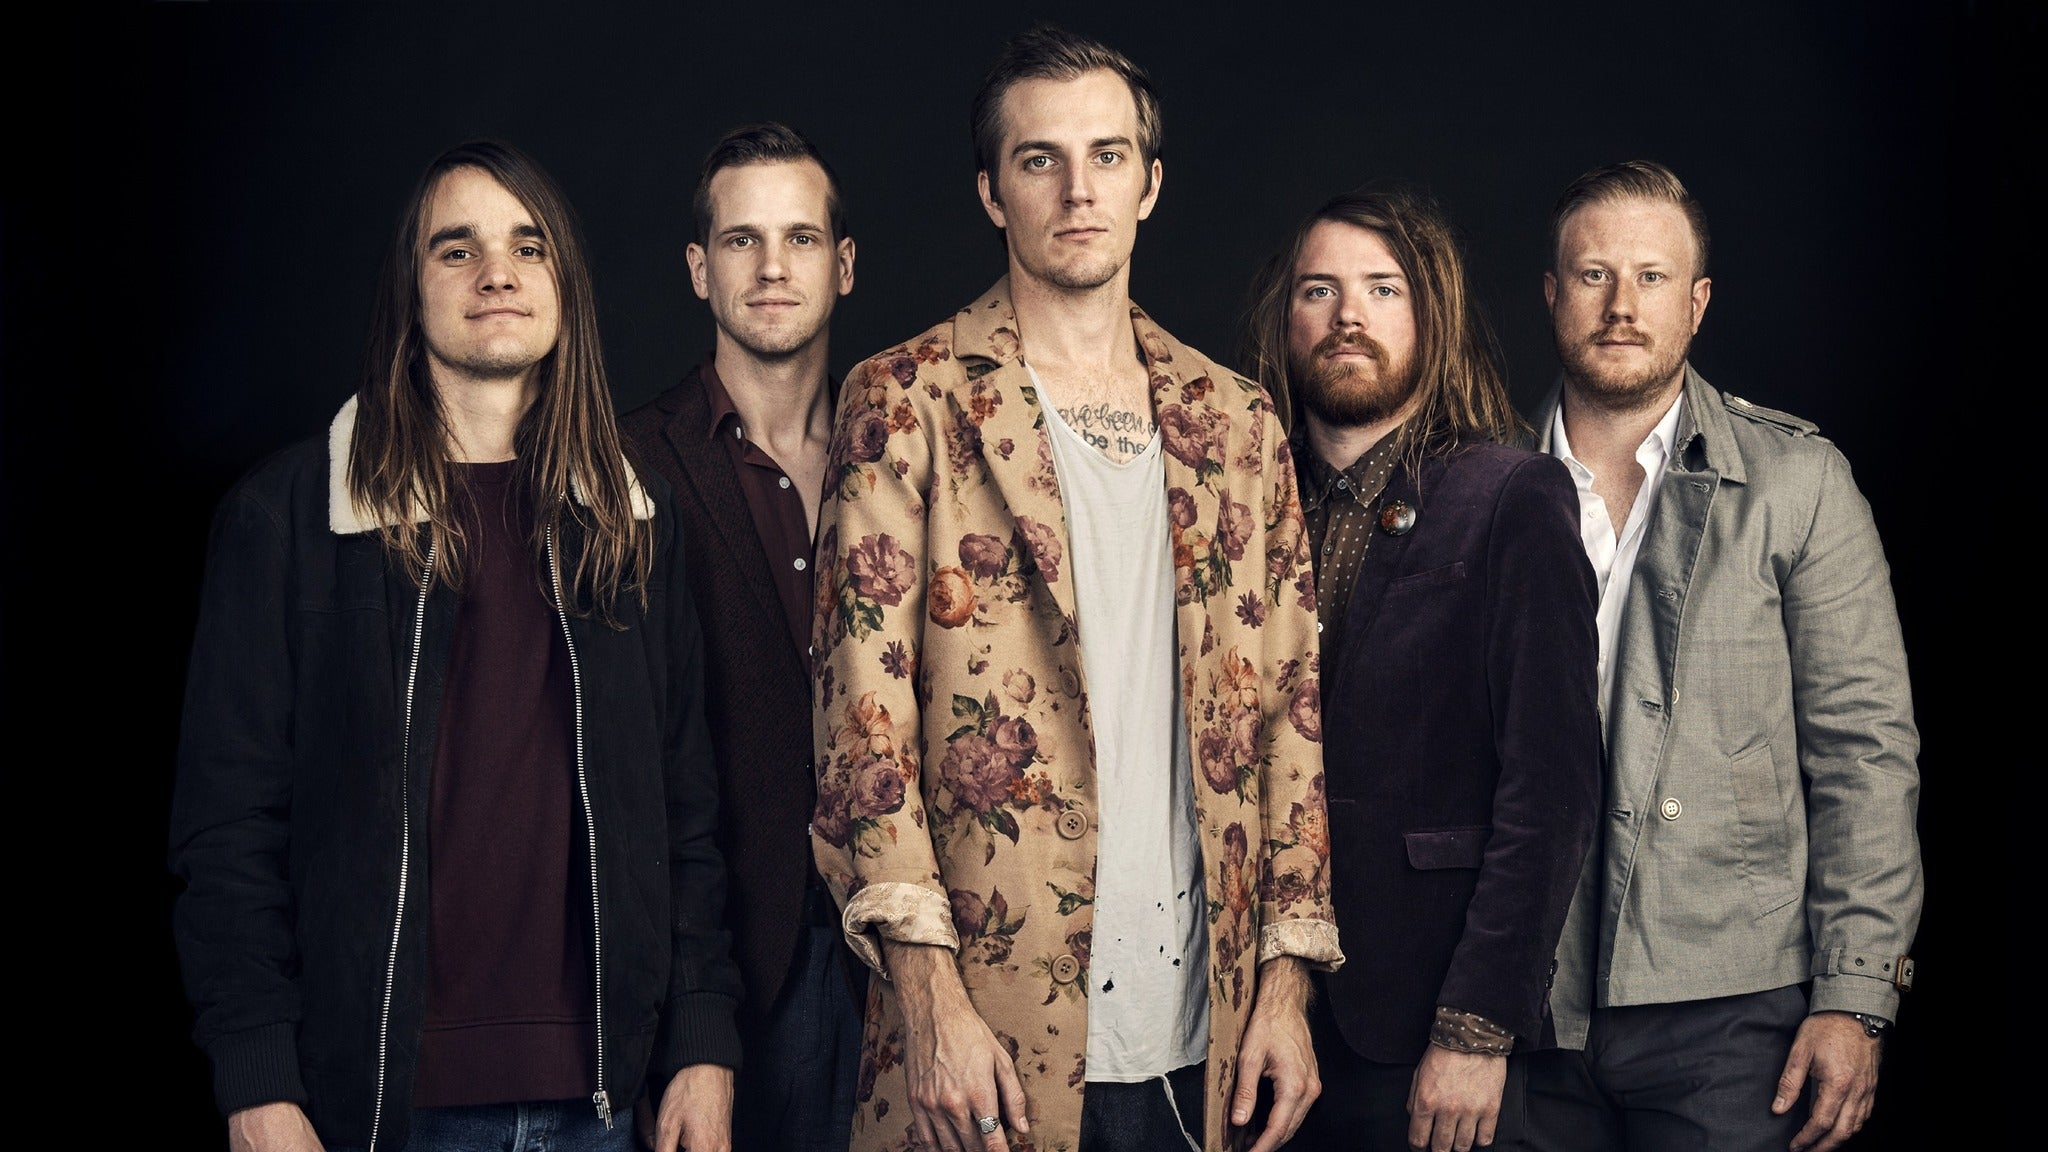 The Maine at Ace of Spades